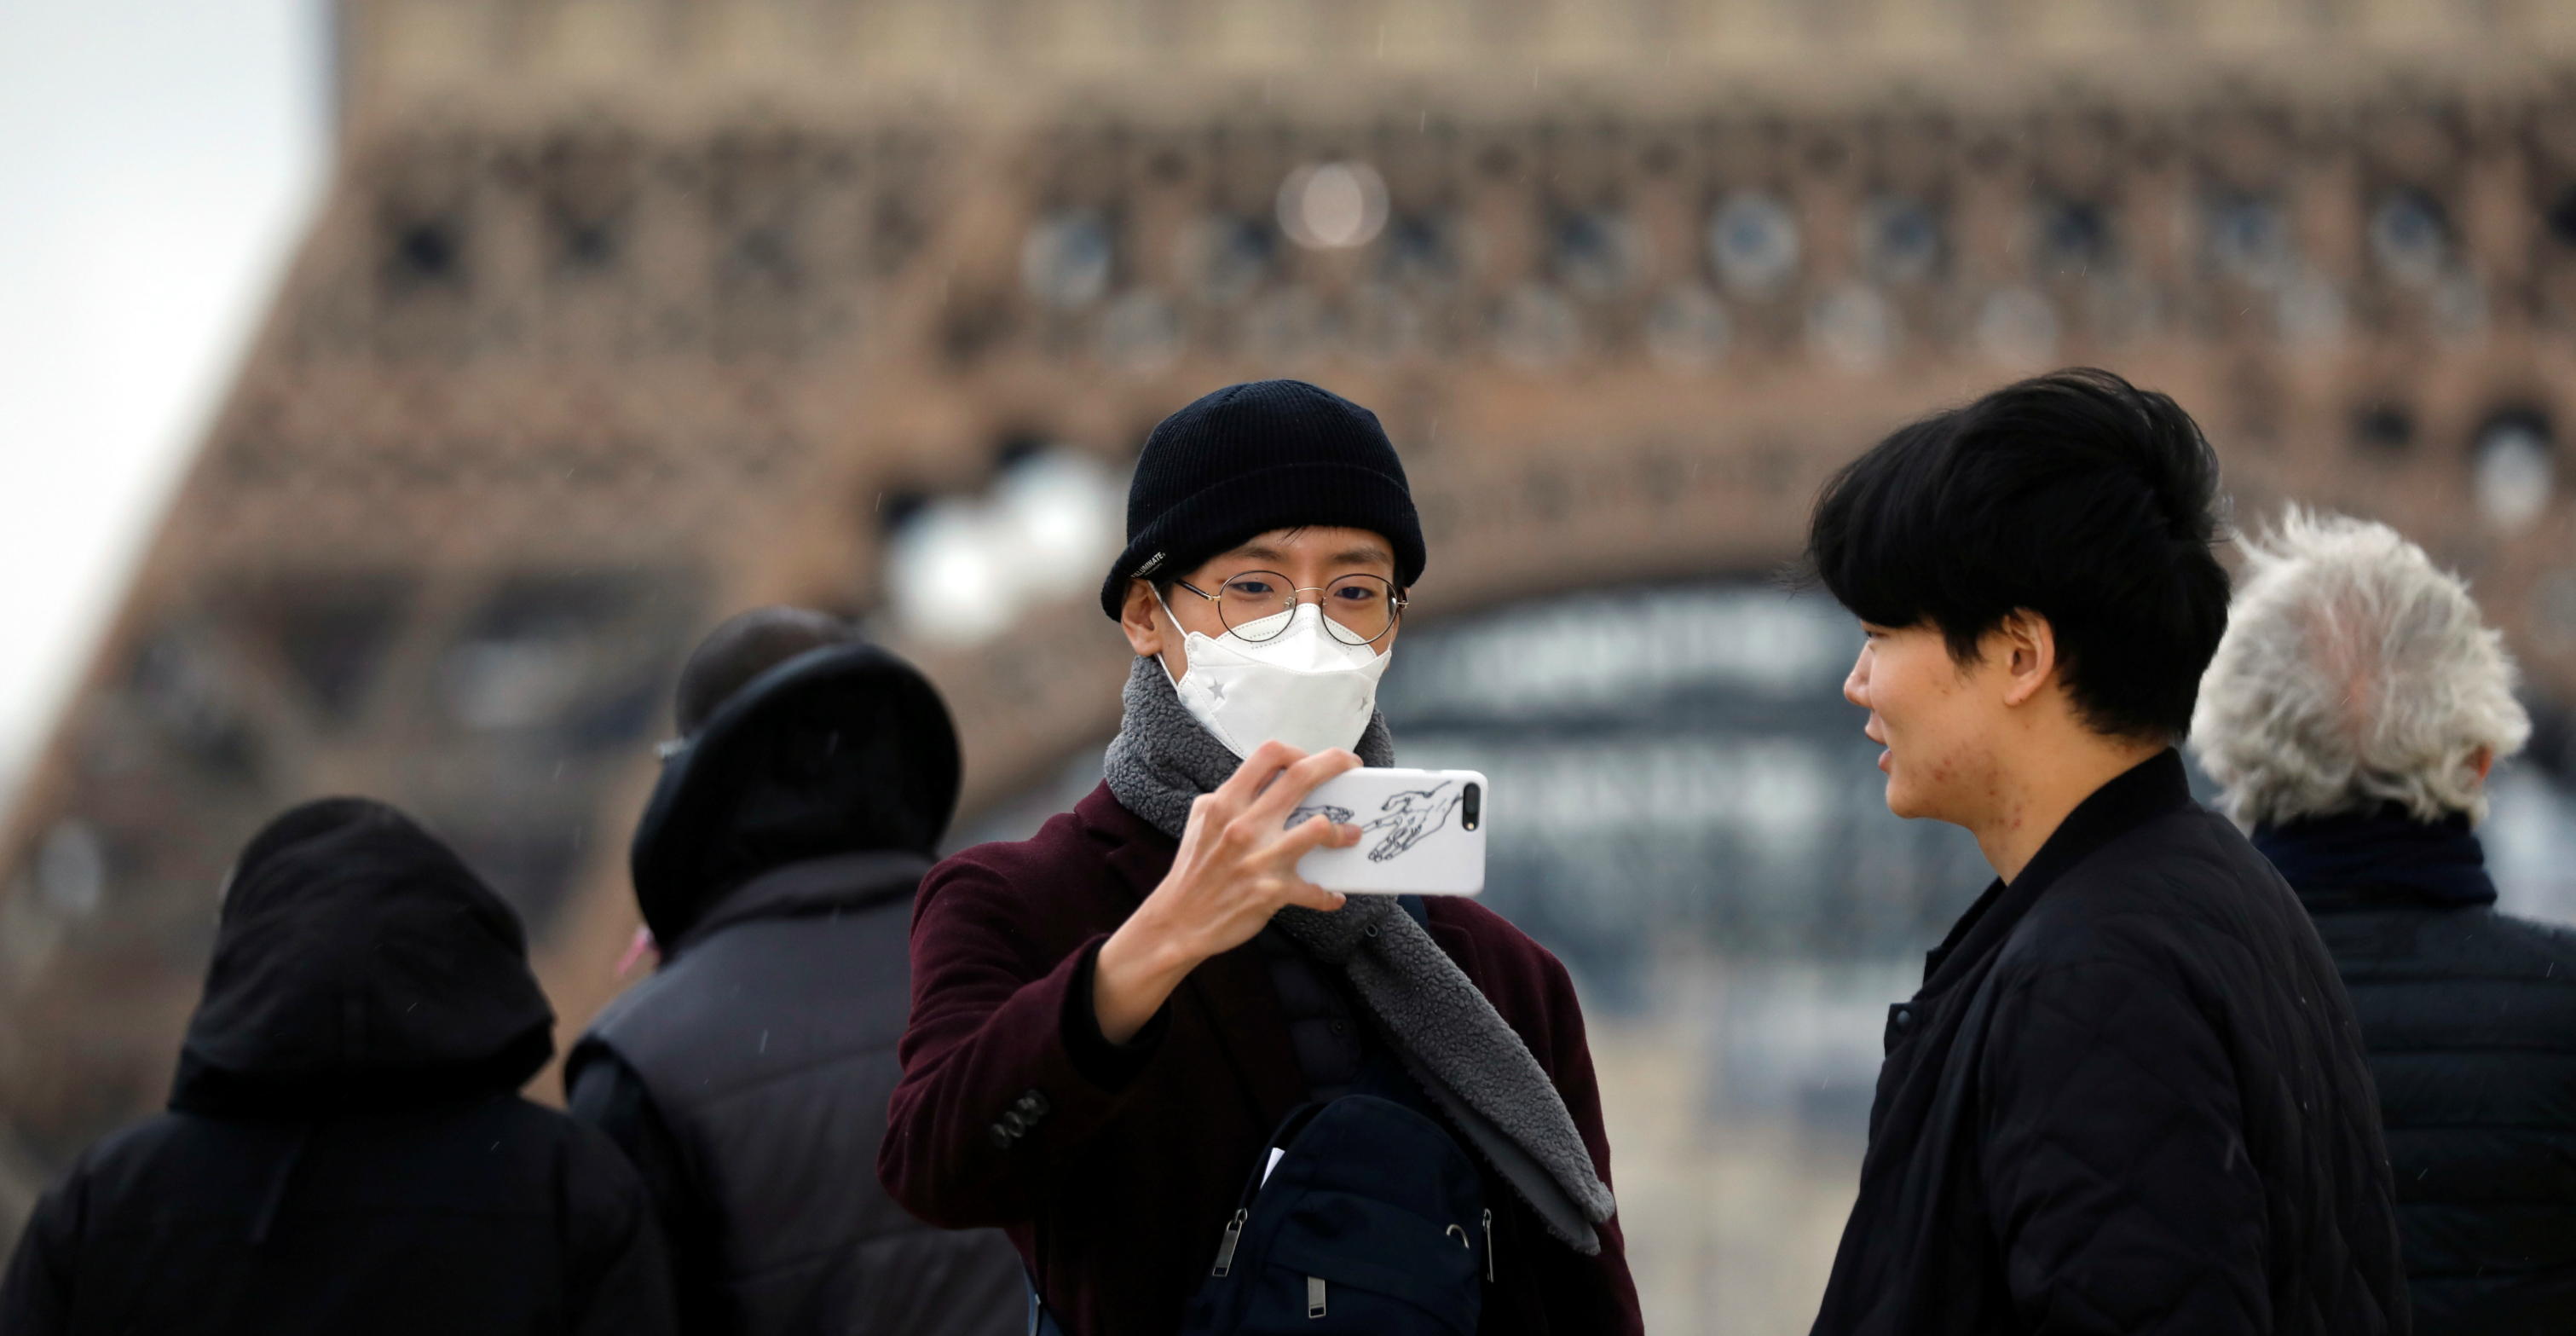 A man wearing a protective mask takes a selfie on the Trocadero esplanade in front of the Eiffel Tower in Paris on Wednesday. Photo: Reuters